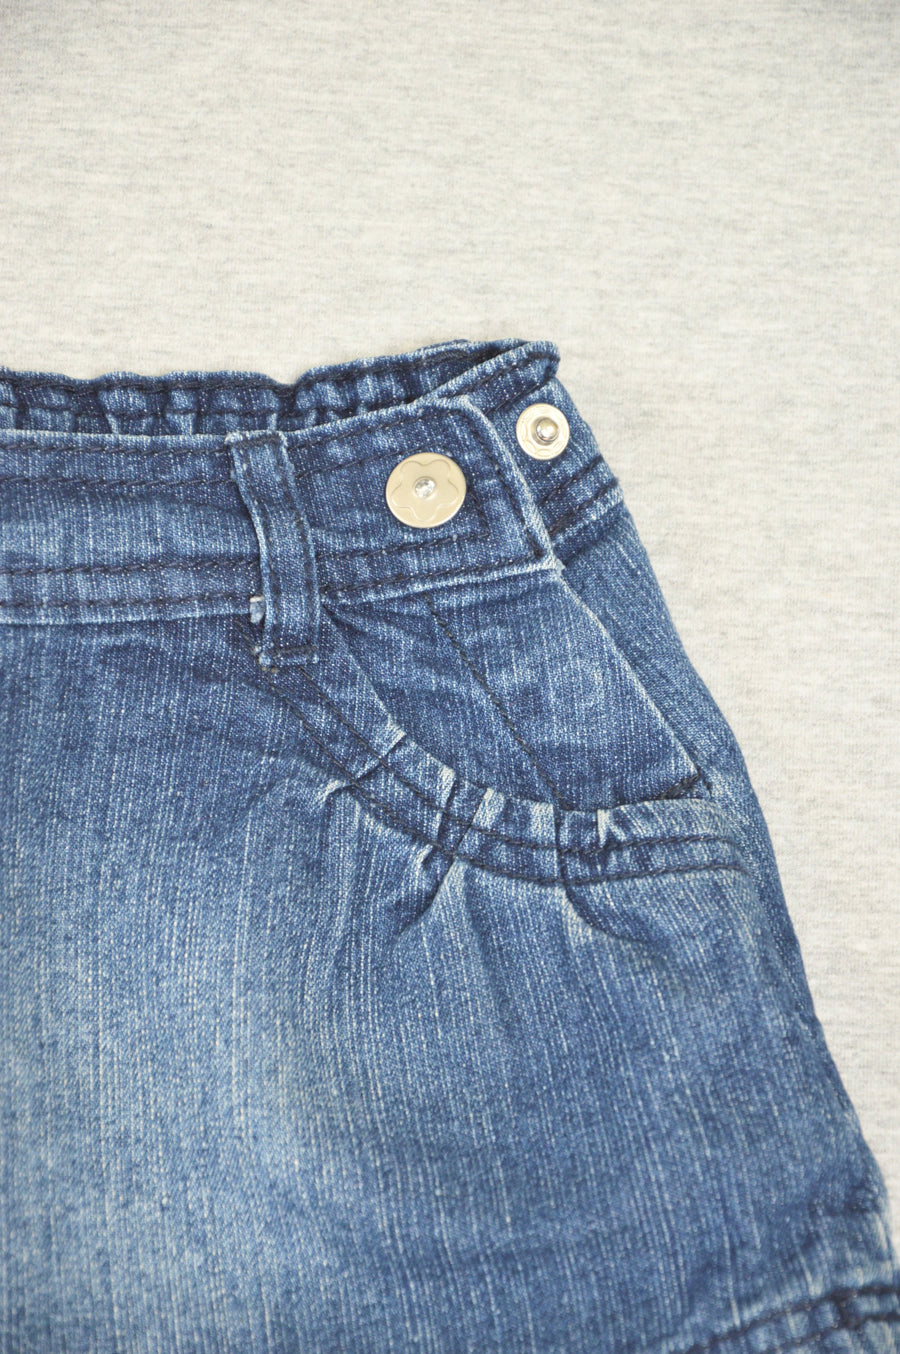 JK - nearly new - denim skirt, size 6-9m